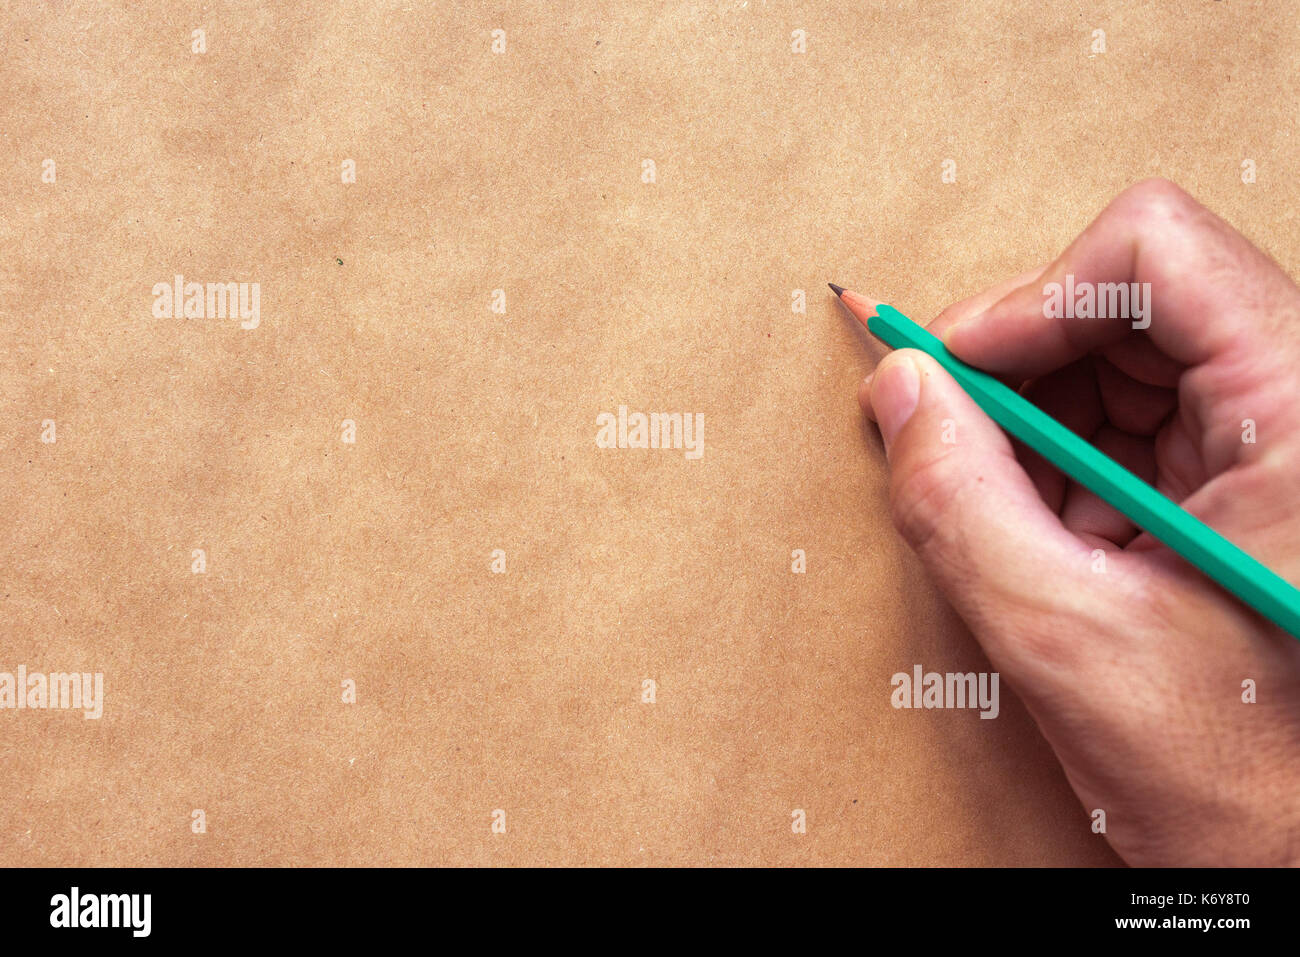 Male illustrator and sketch artist drawing with pencil, top view of  hand close up with selective focus - Stock Image